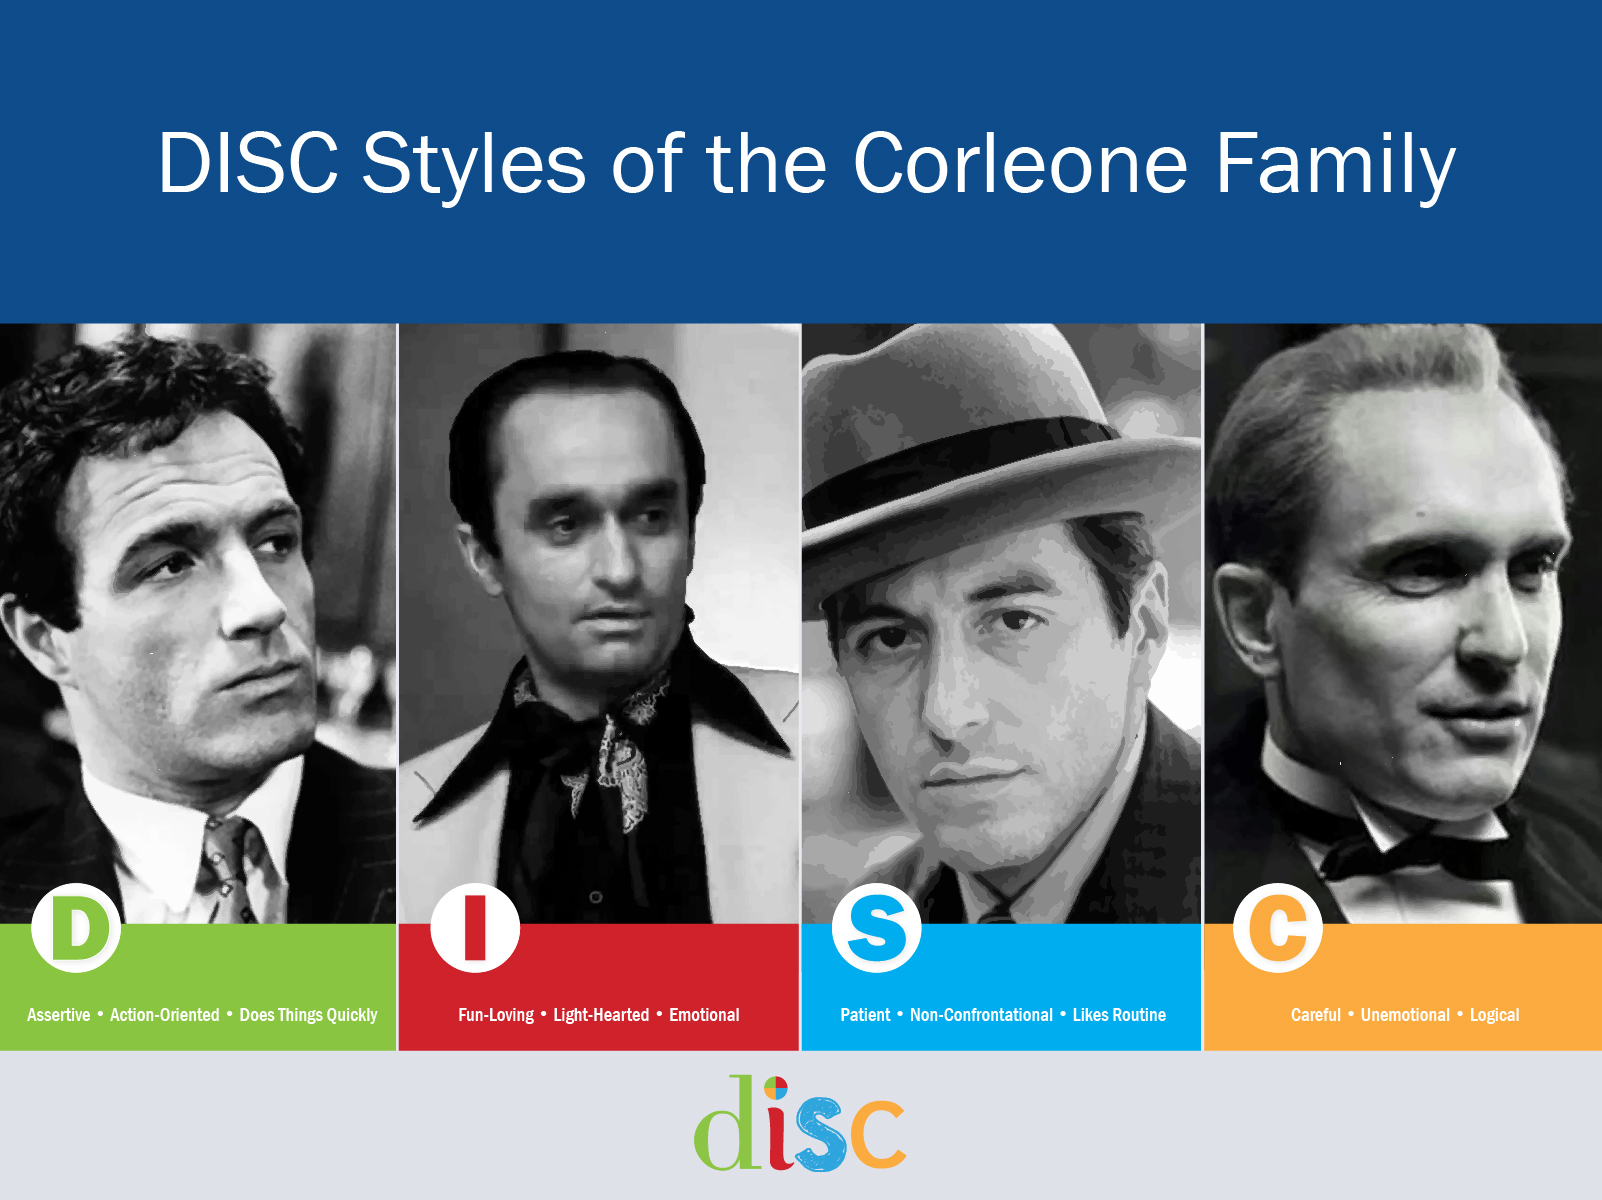 DISC Styles of the Corleone Family